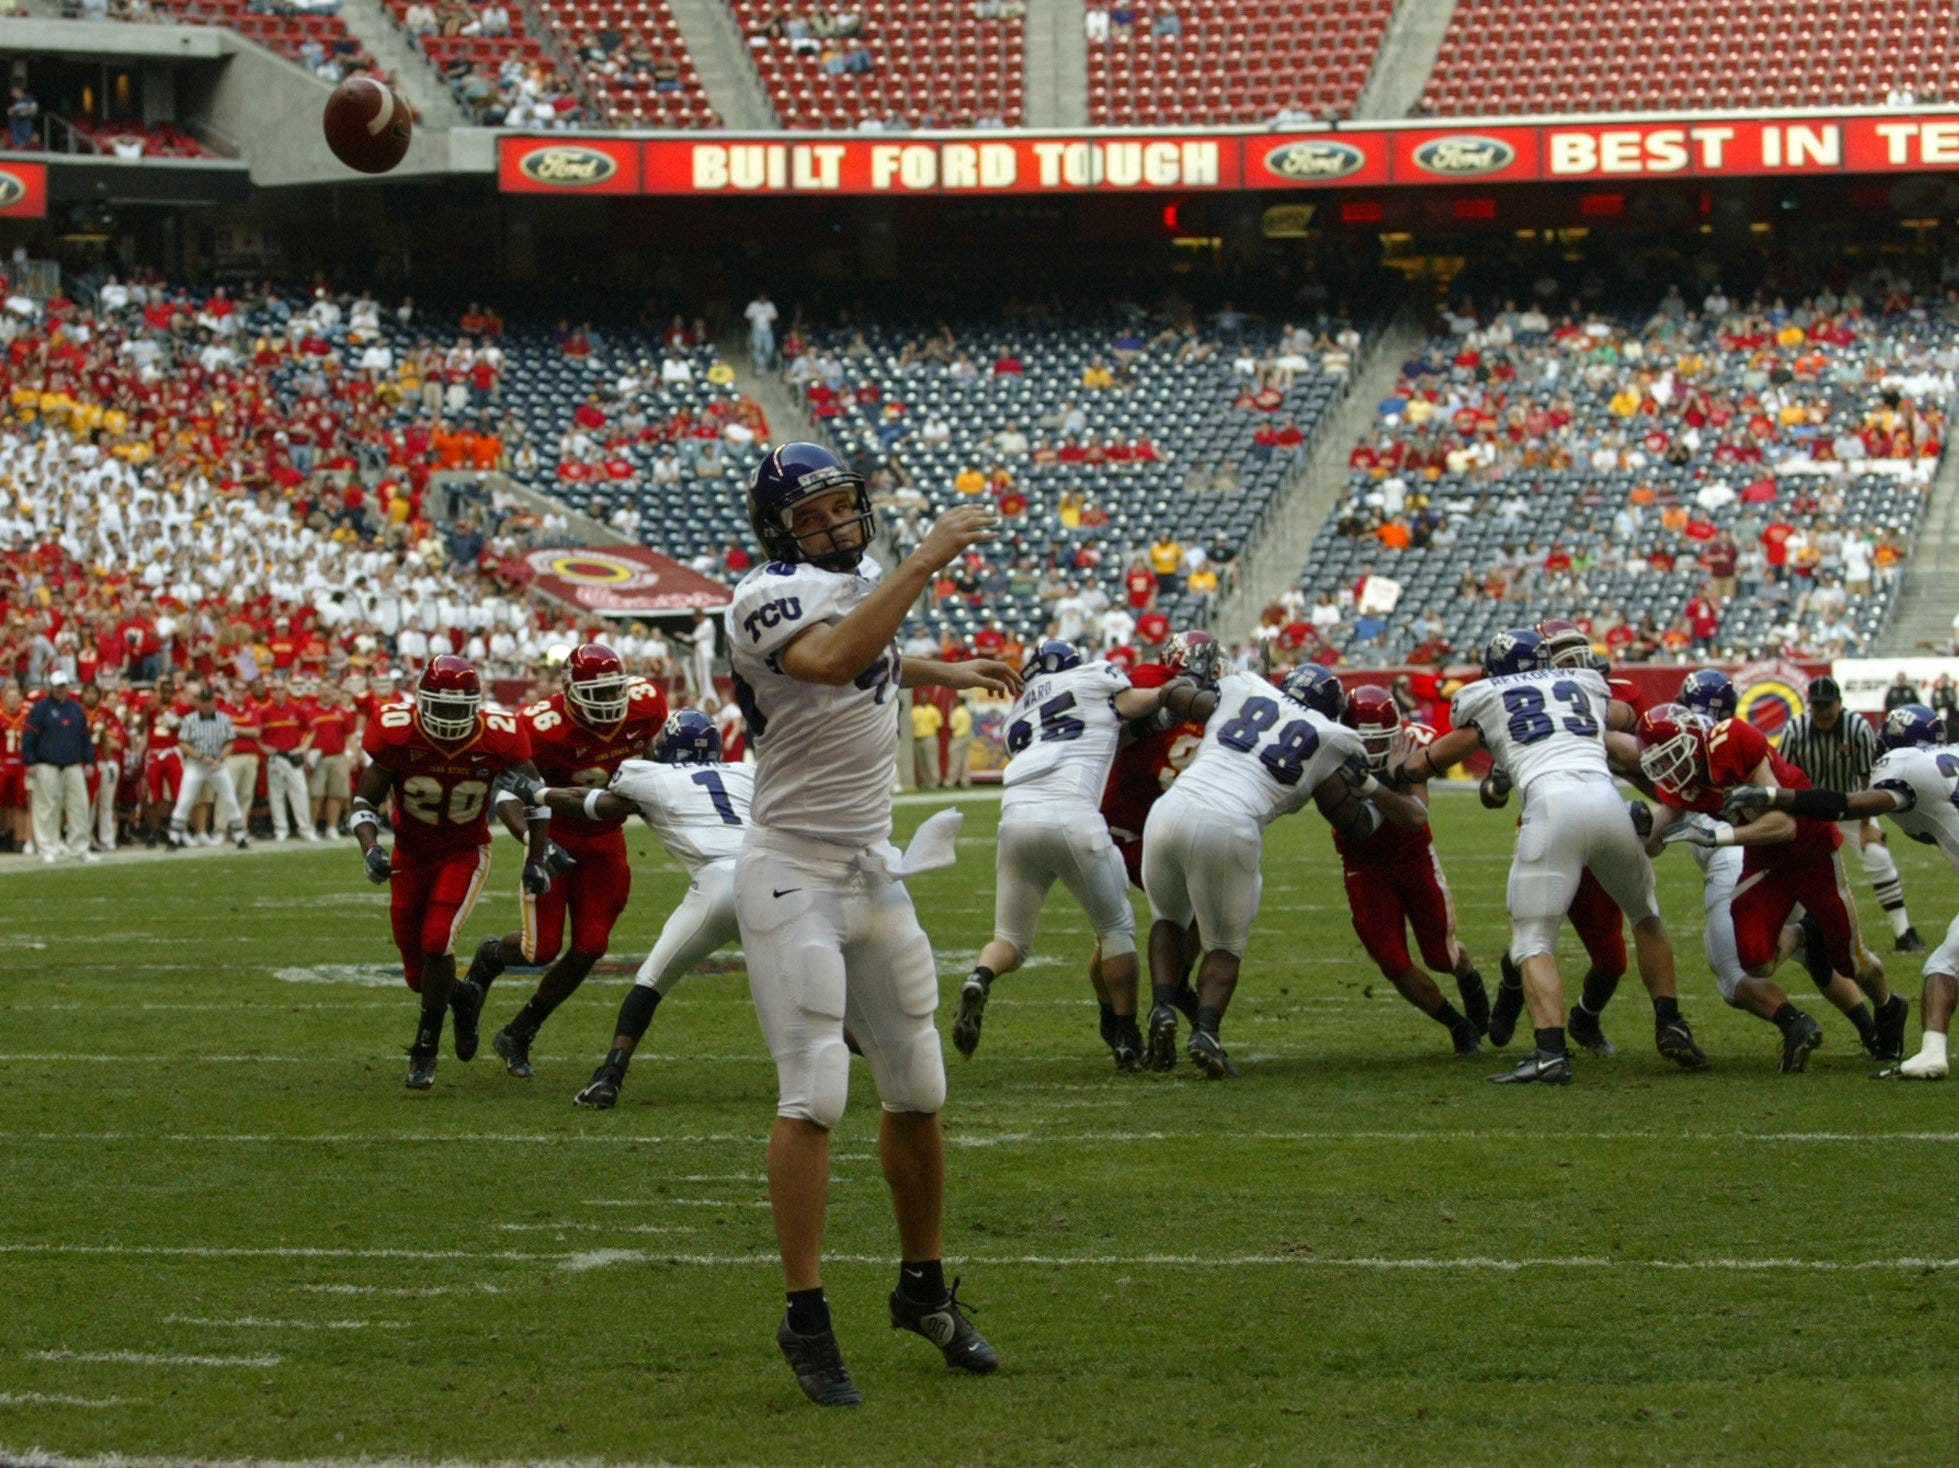 Texas Christian punter Brian Cortney watches helplessly as the ball is snapped over his head for a safety at Reliant Stadium during the 2005 Houston Bowl.